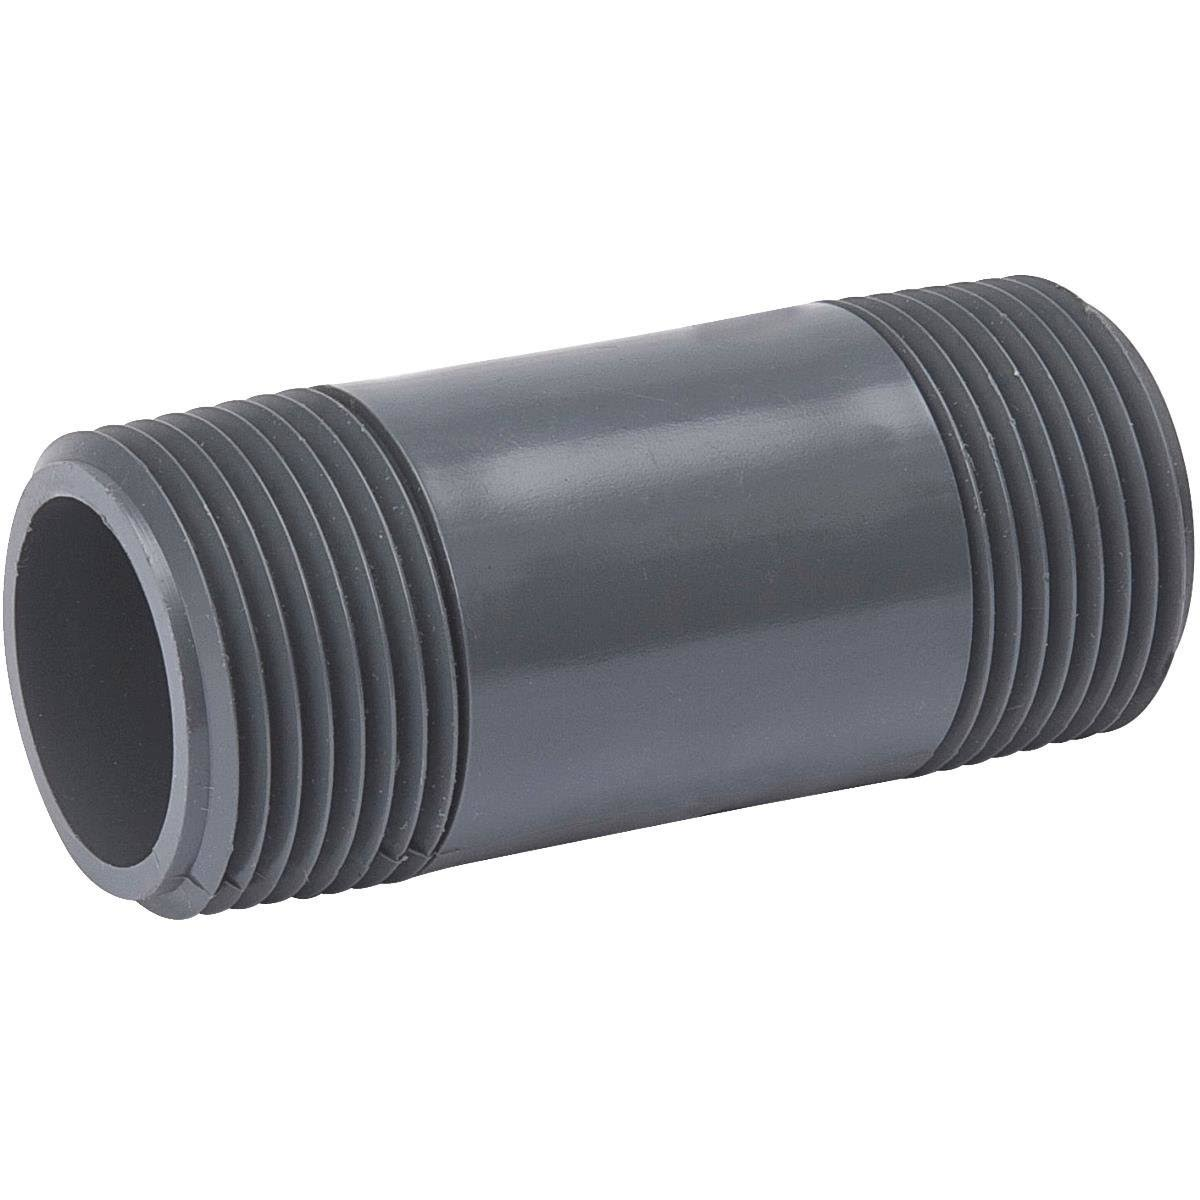 Mueller Industries Pvc Nipple - Gray